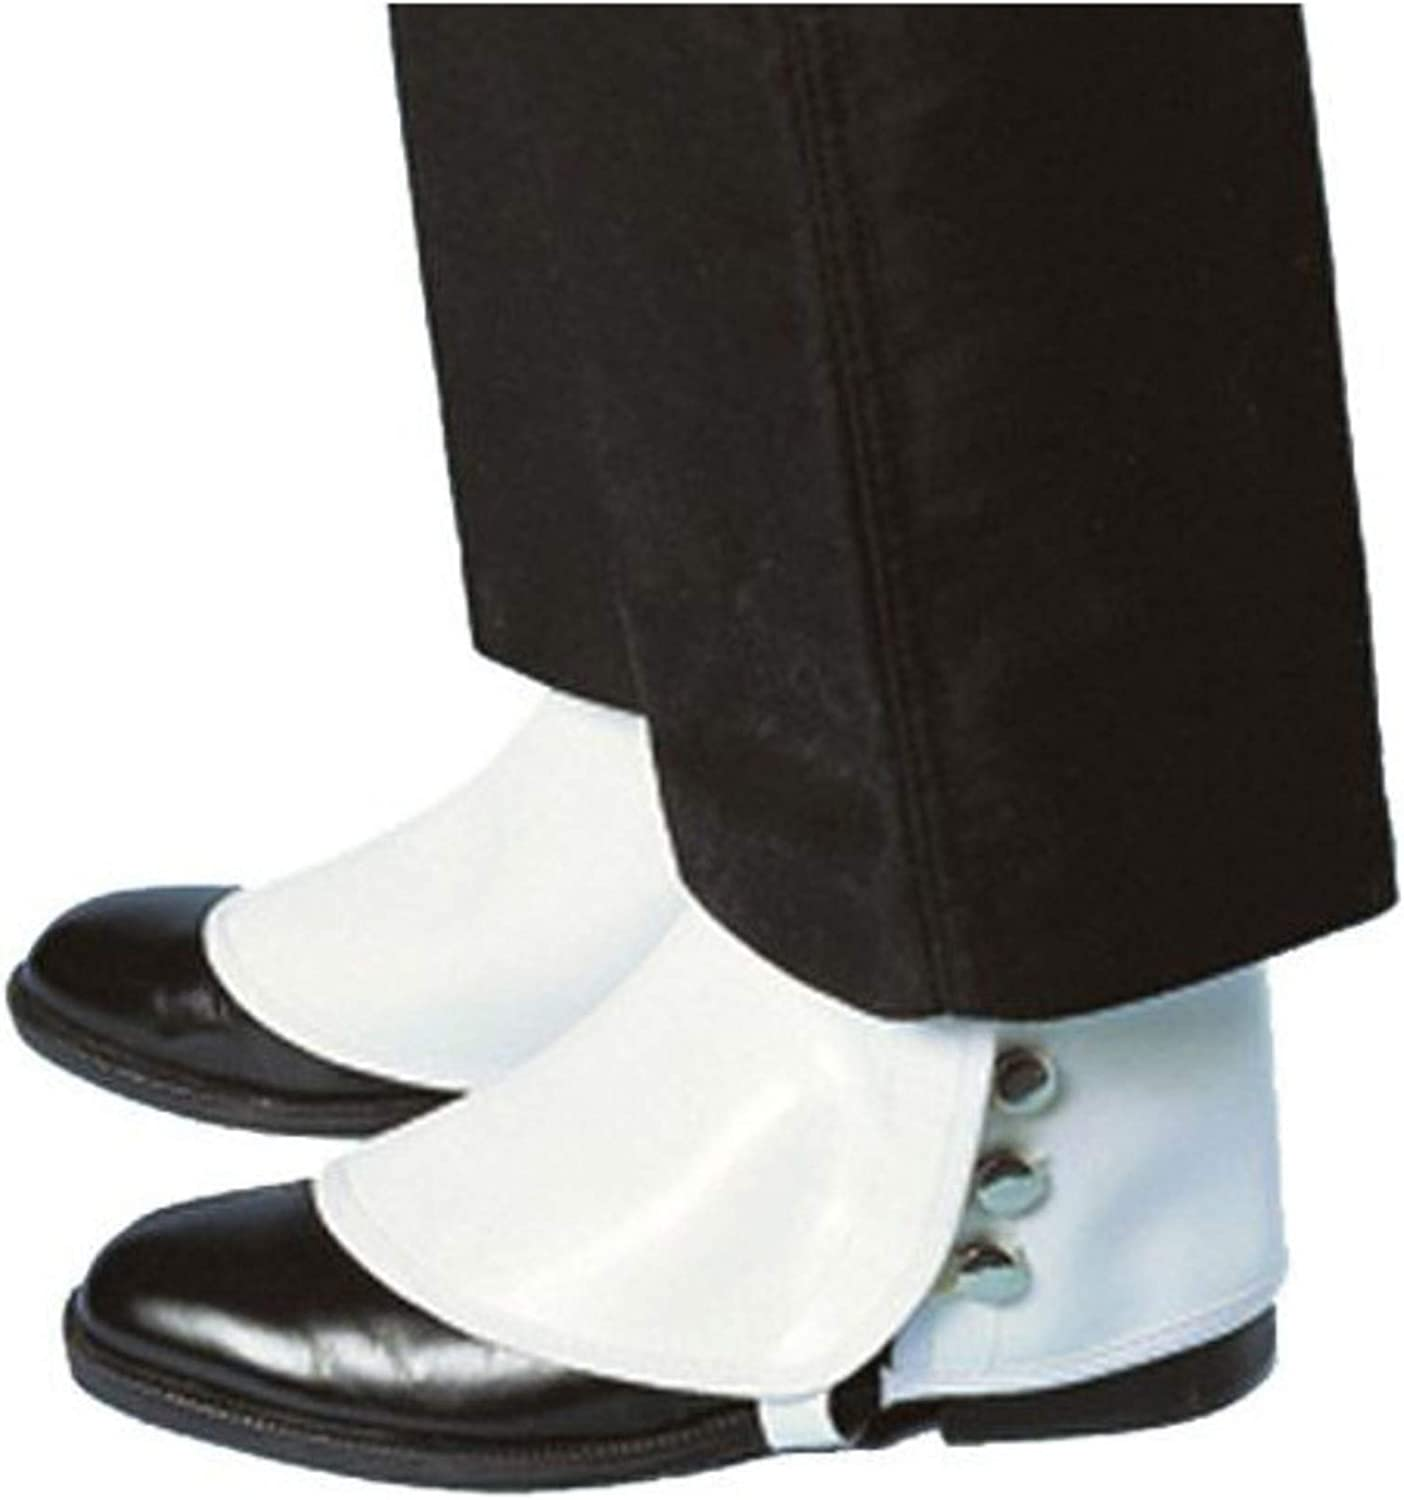 White Beistle 60055 2 Pairs Spats